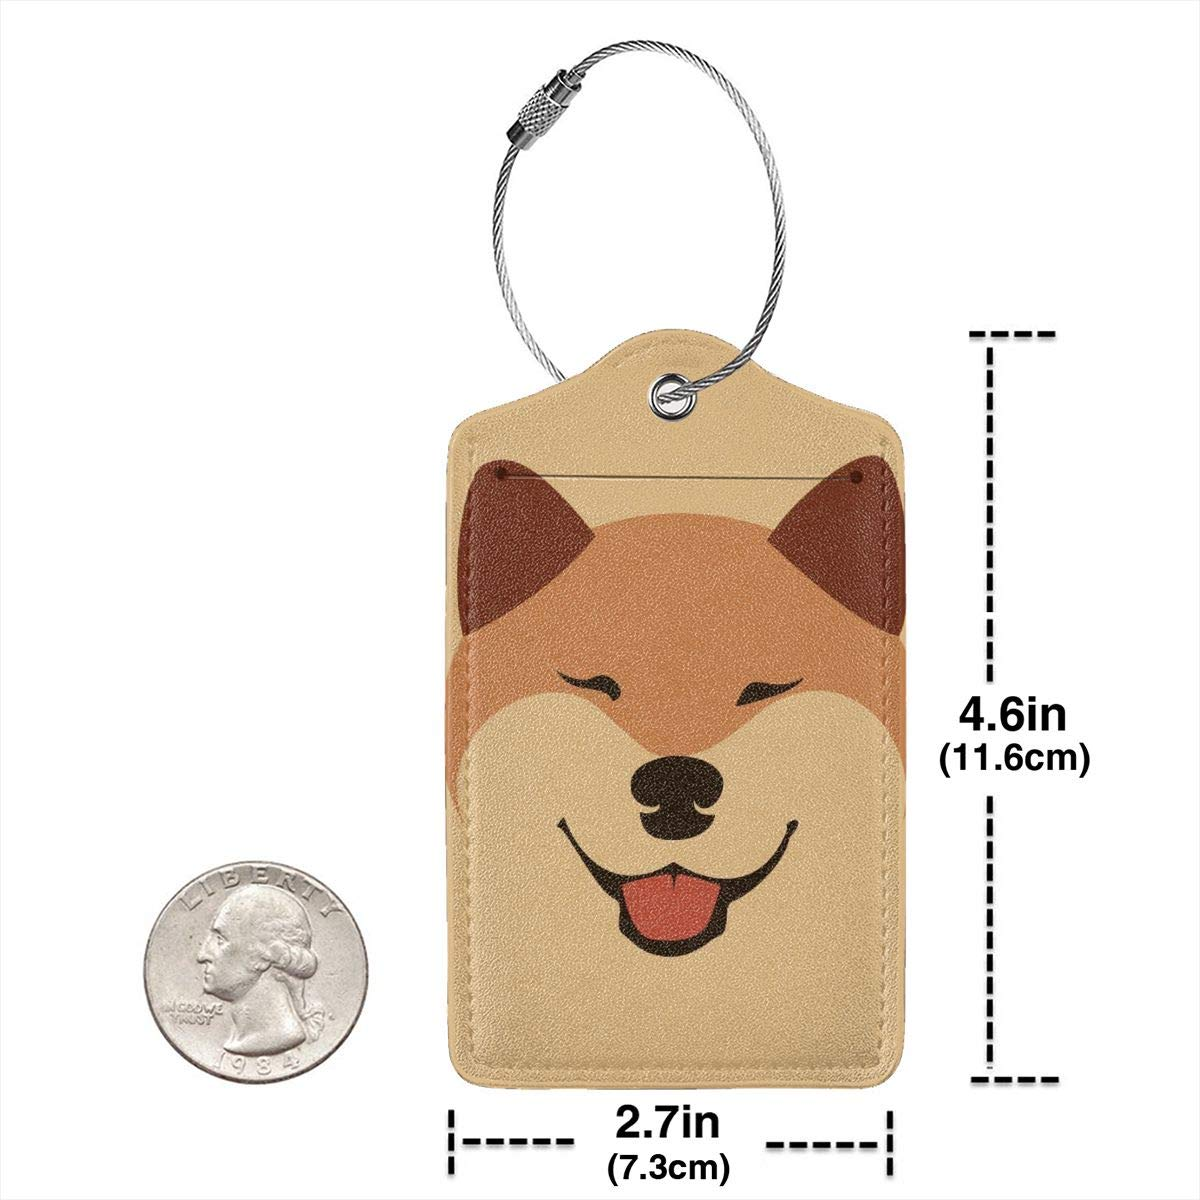 GoldK Cute Shiba Inu Akita Leather Luggage Tags Baggage Bag Instrument Tag Travel Labels Accessories with Privacy Cover